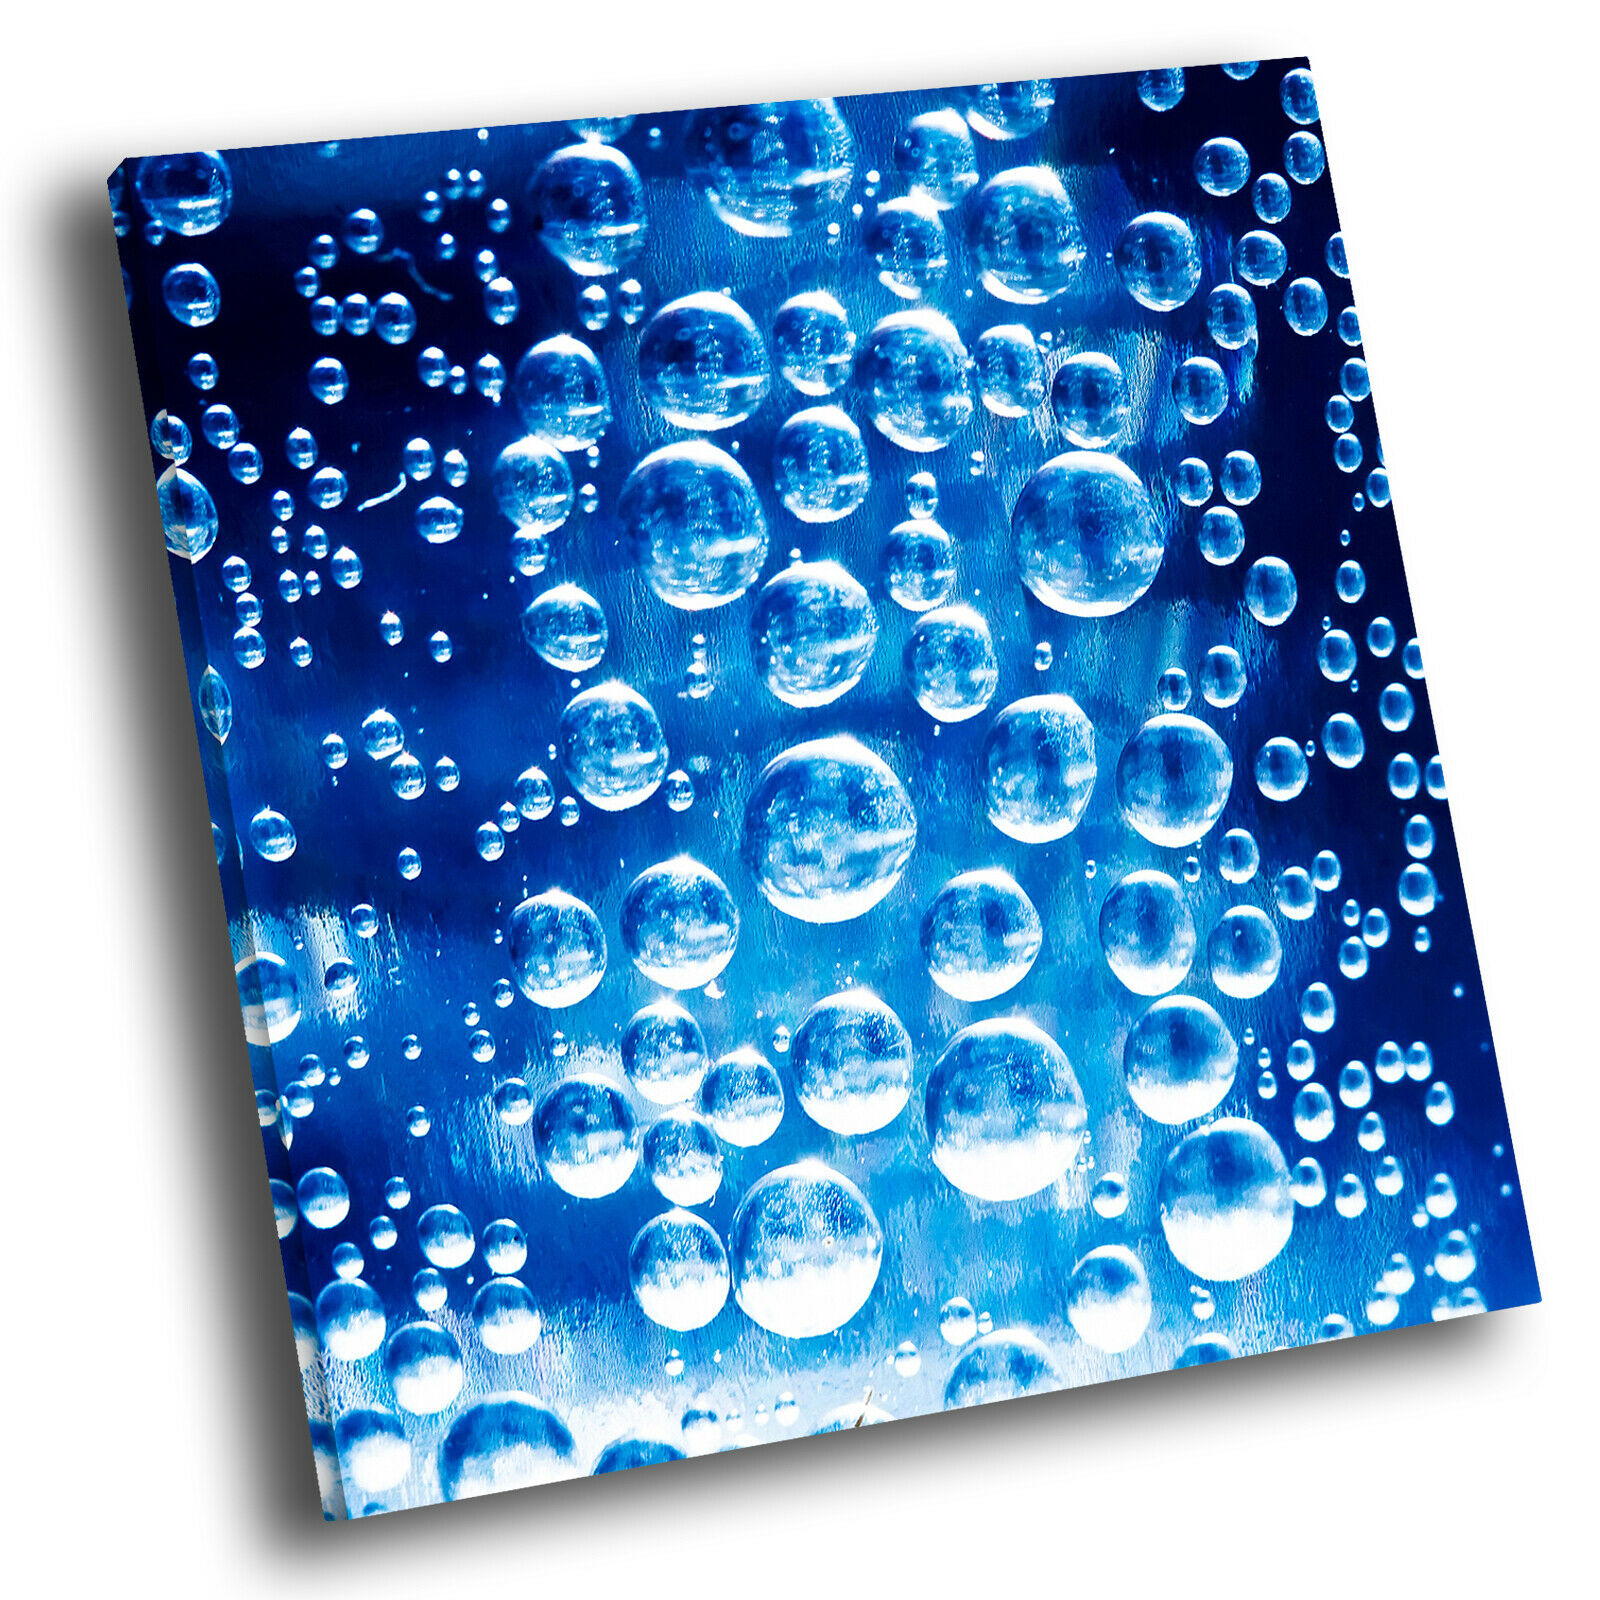 Blau Bubble Cool Square Abstract Photo Canvas Wand Kunst Large Bild Druckens